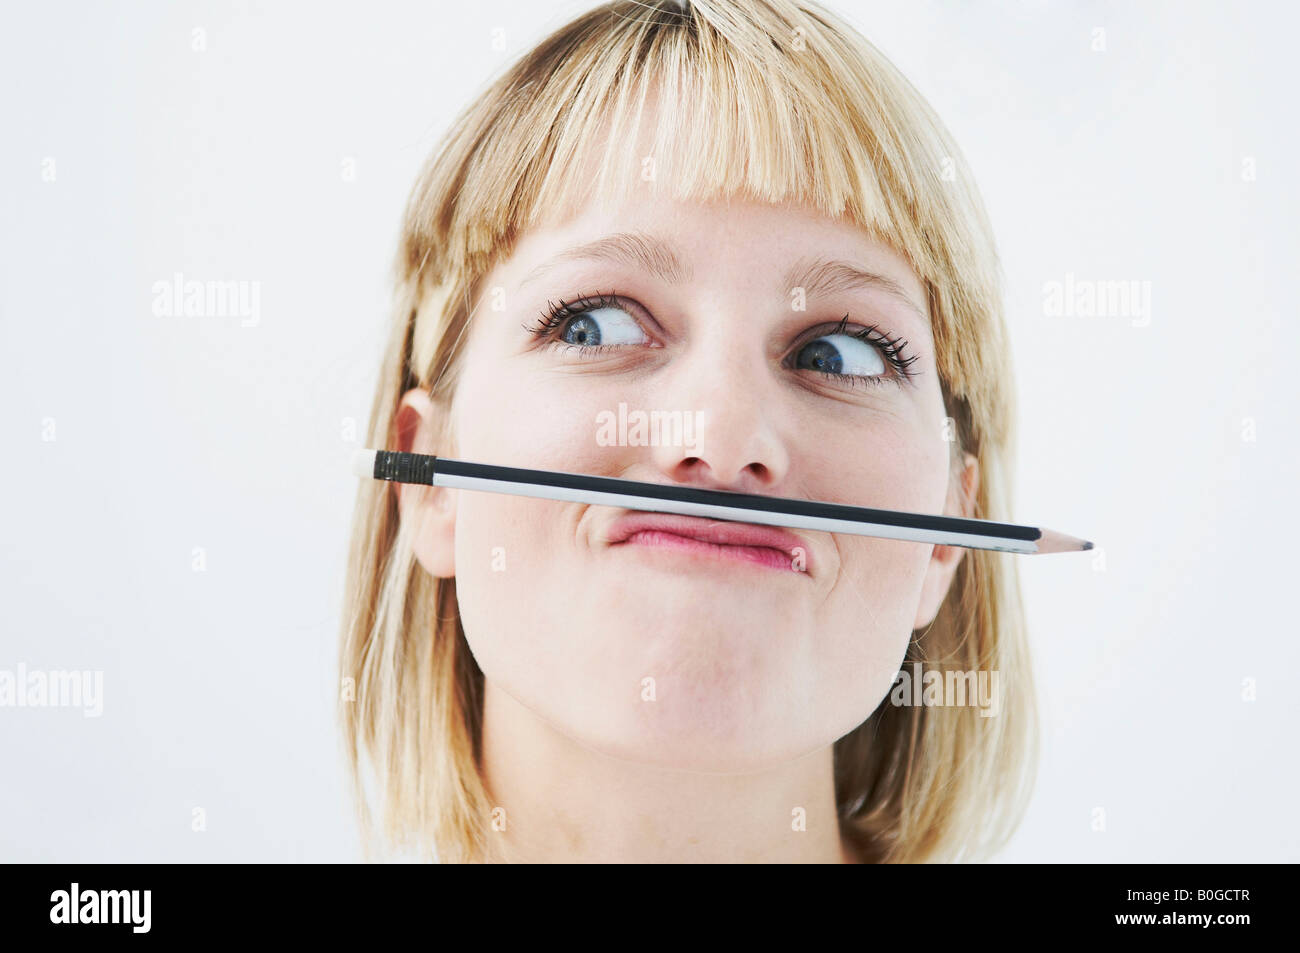 Amusing woman with pencil above mouth - Stock Image